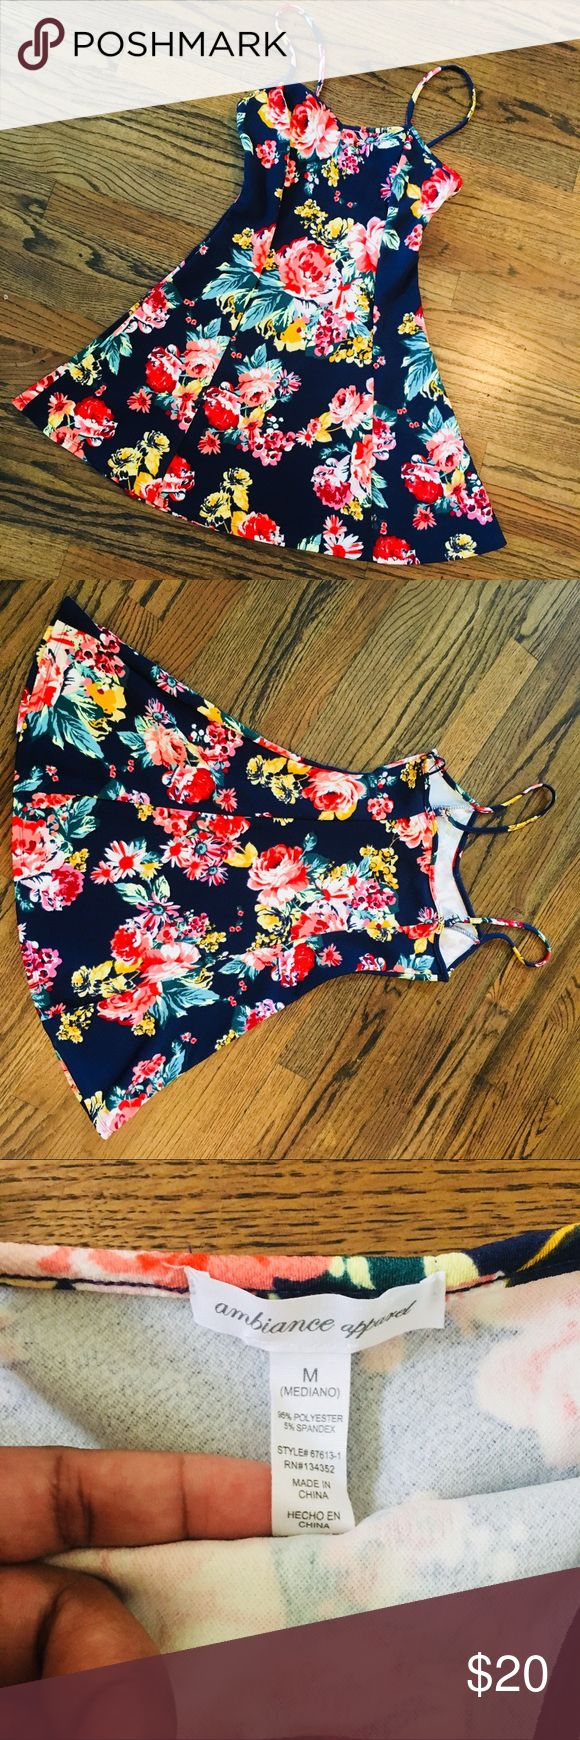 Flower Dress Colorful dress, perfect for a day on the beach or cute picnic date outfit, can be dressed up or down, stretchy fit!!! Dresses Mini